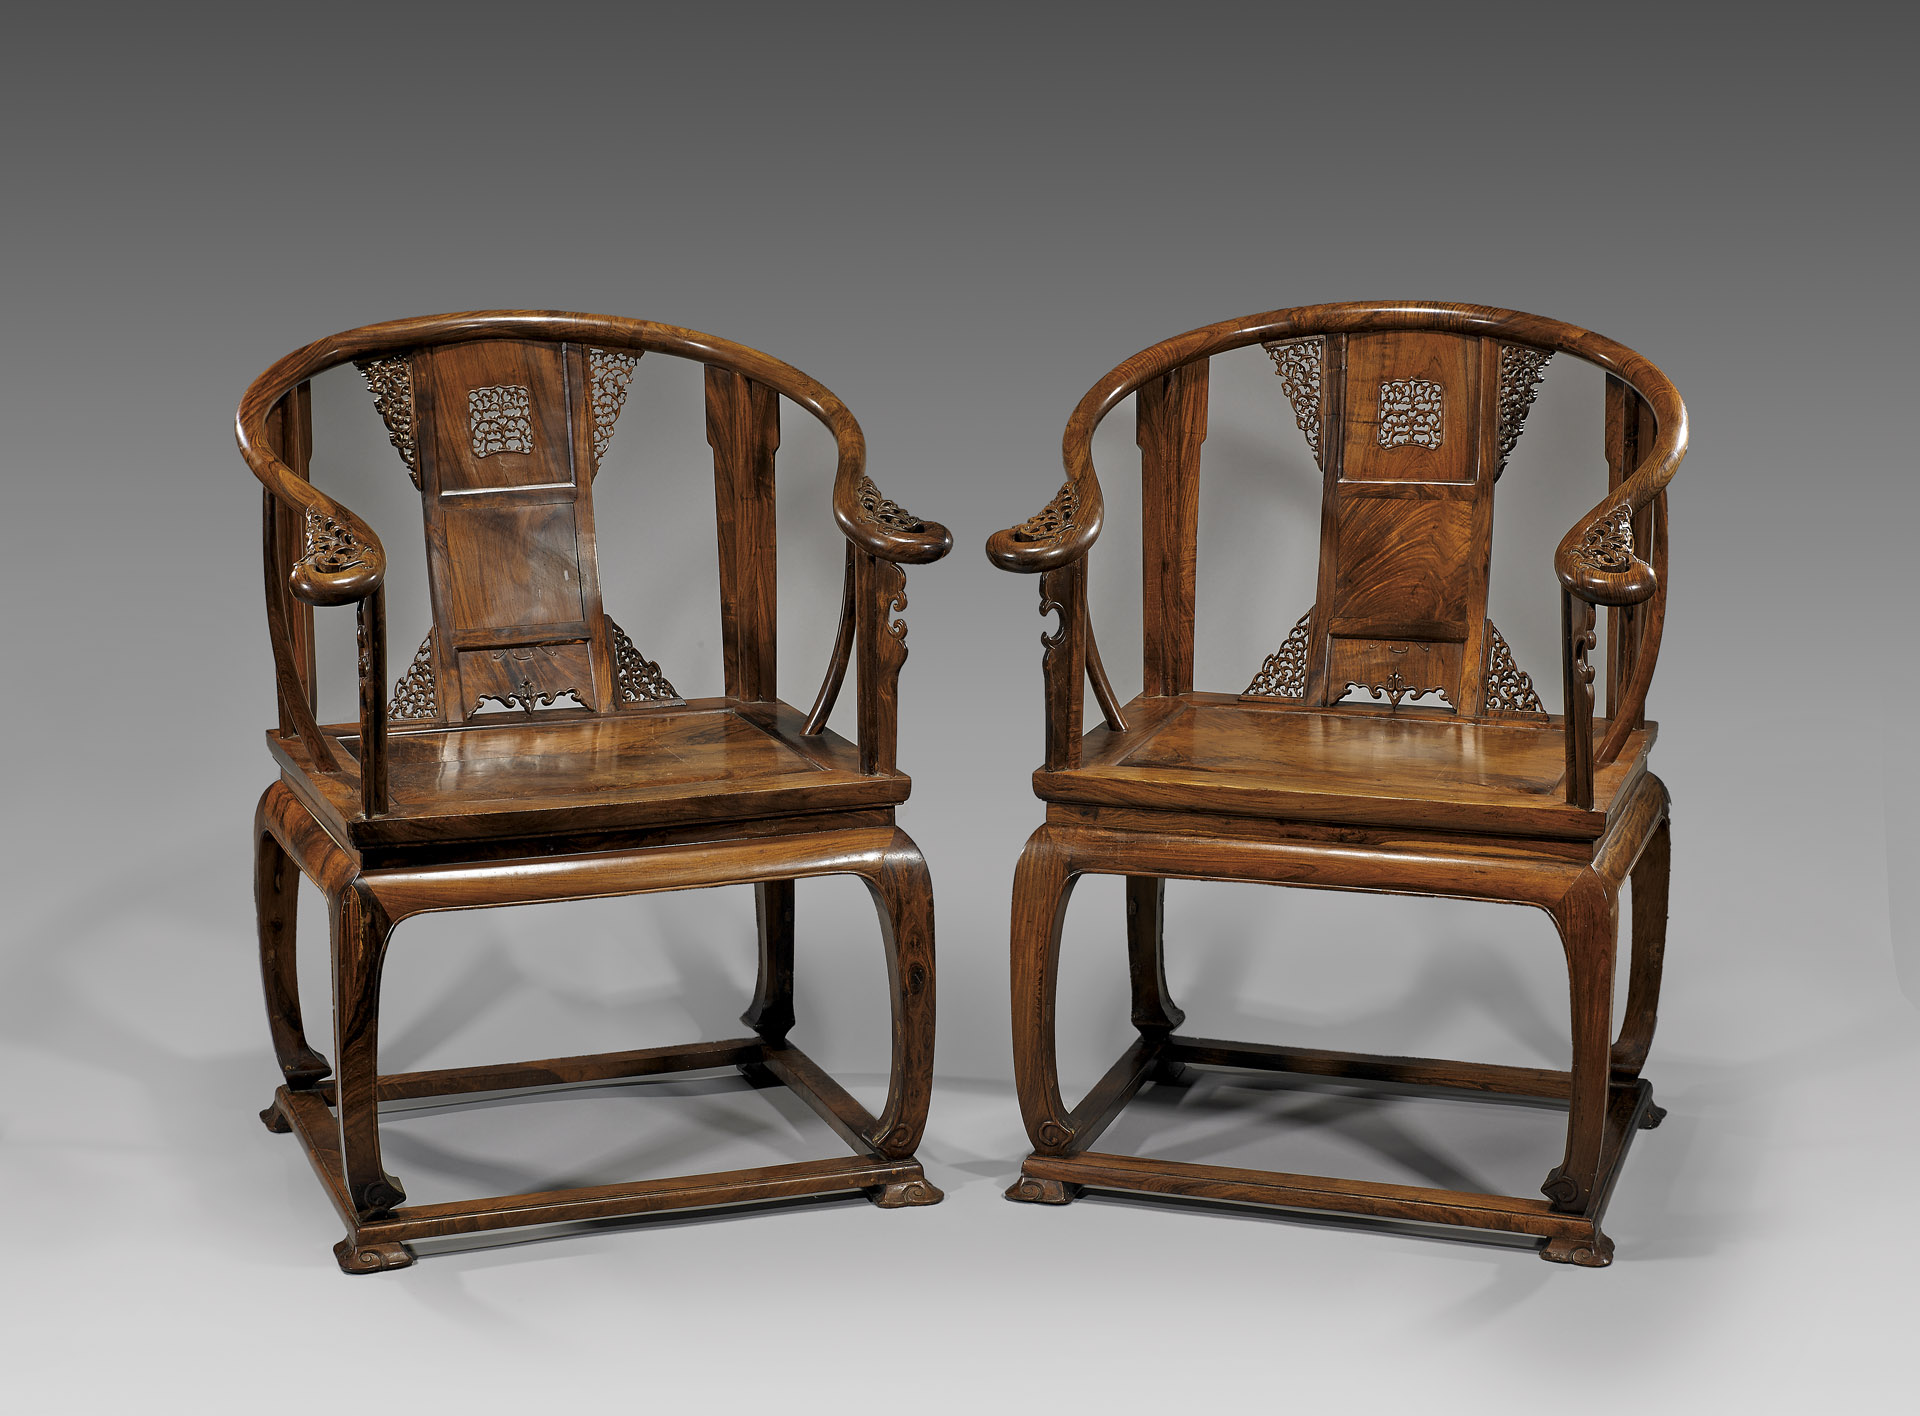 Two elaborately designed Ming Dynasty chairs side-by-side